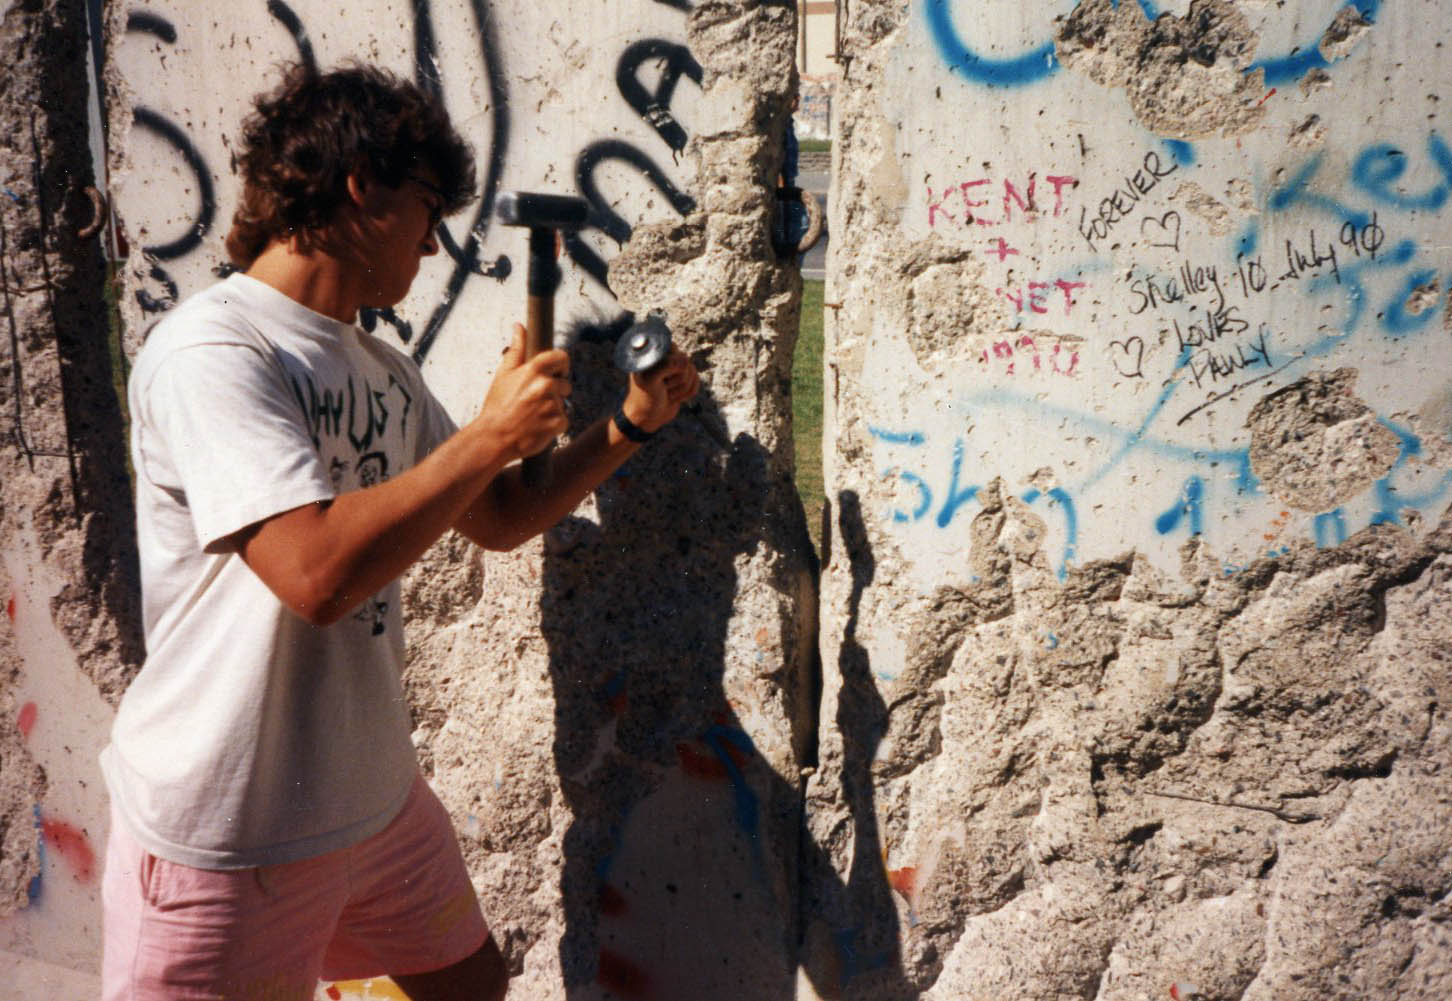 That's me, chiseling away at the Berlin Wall - July 1990.